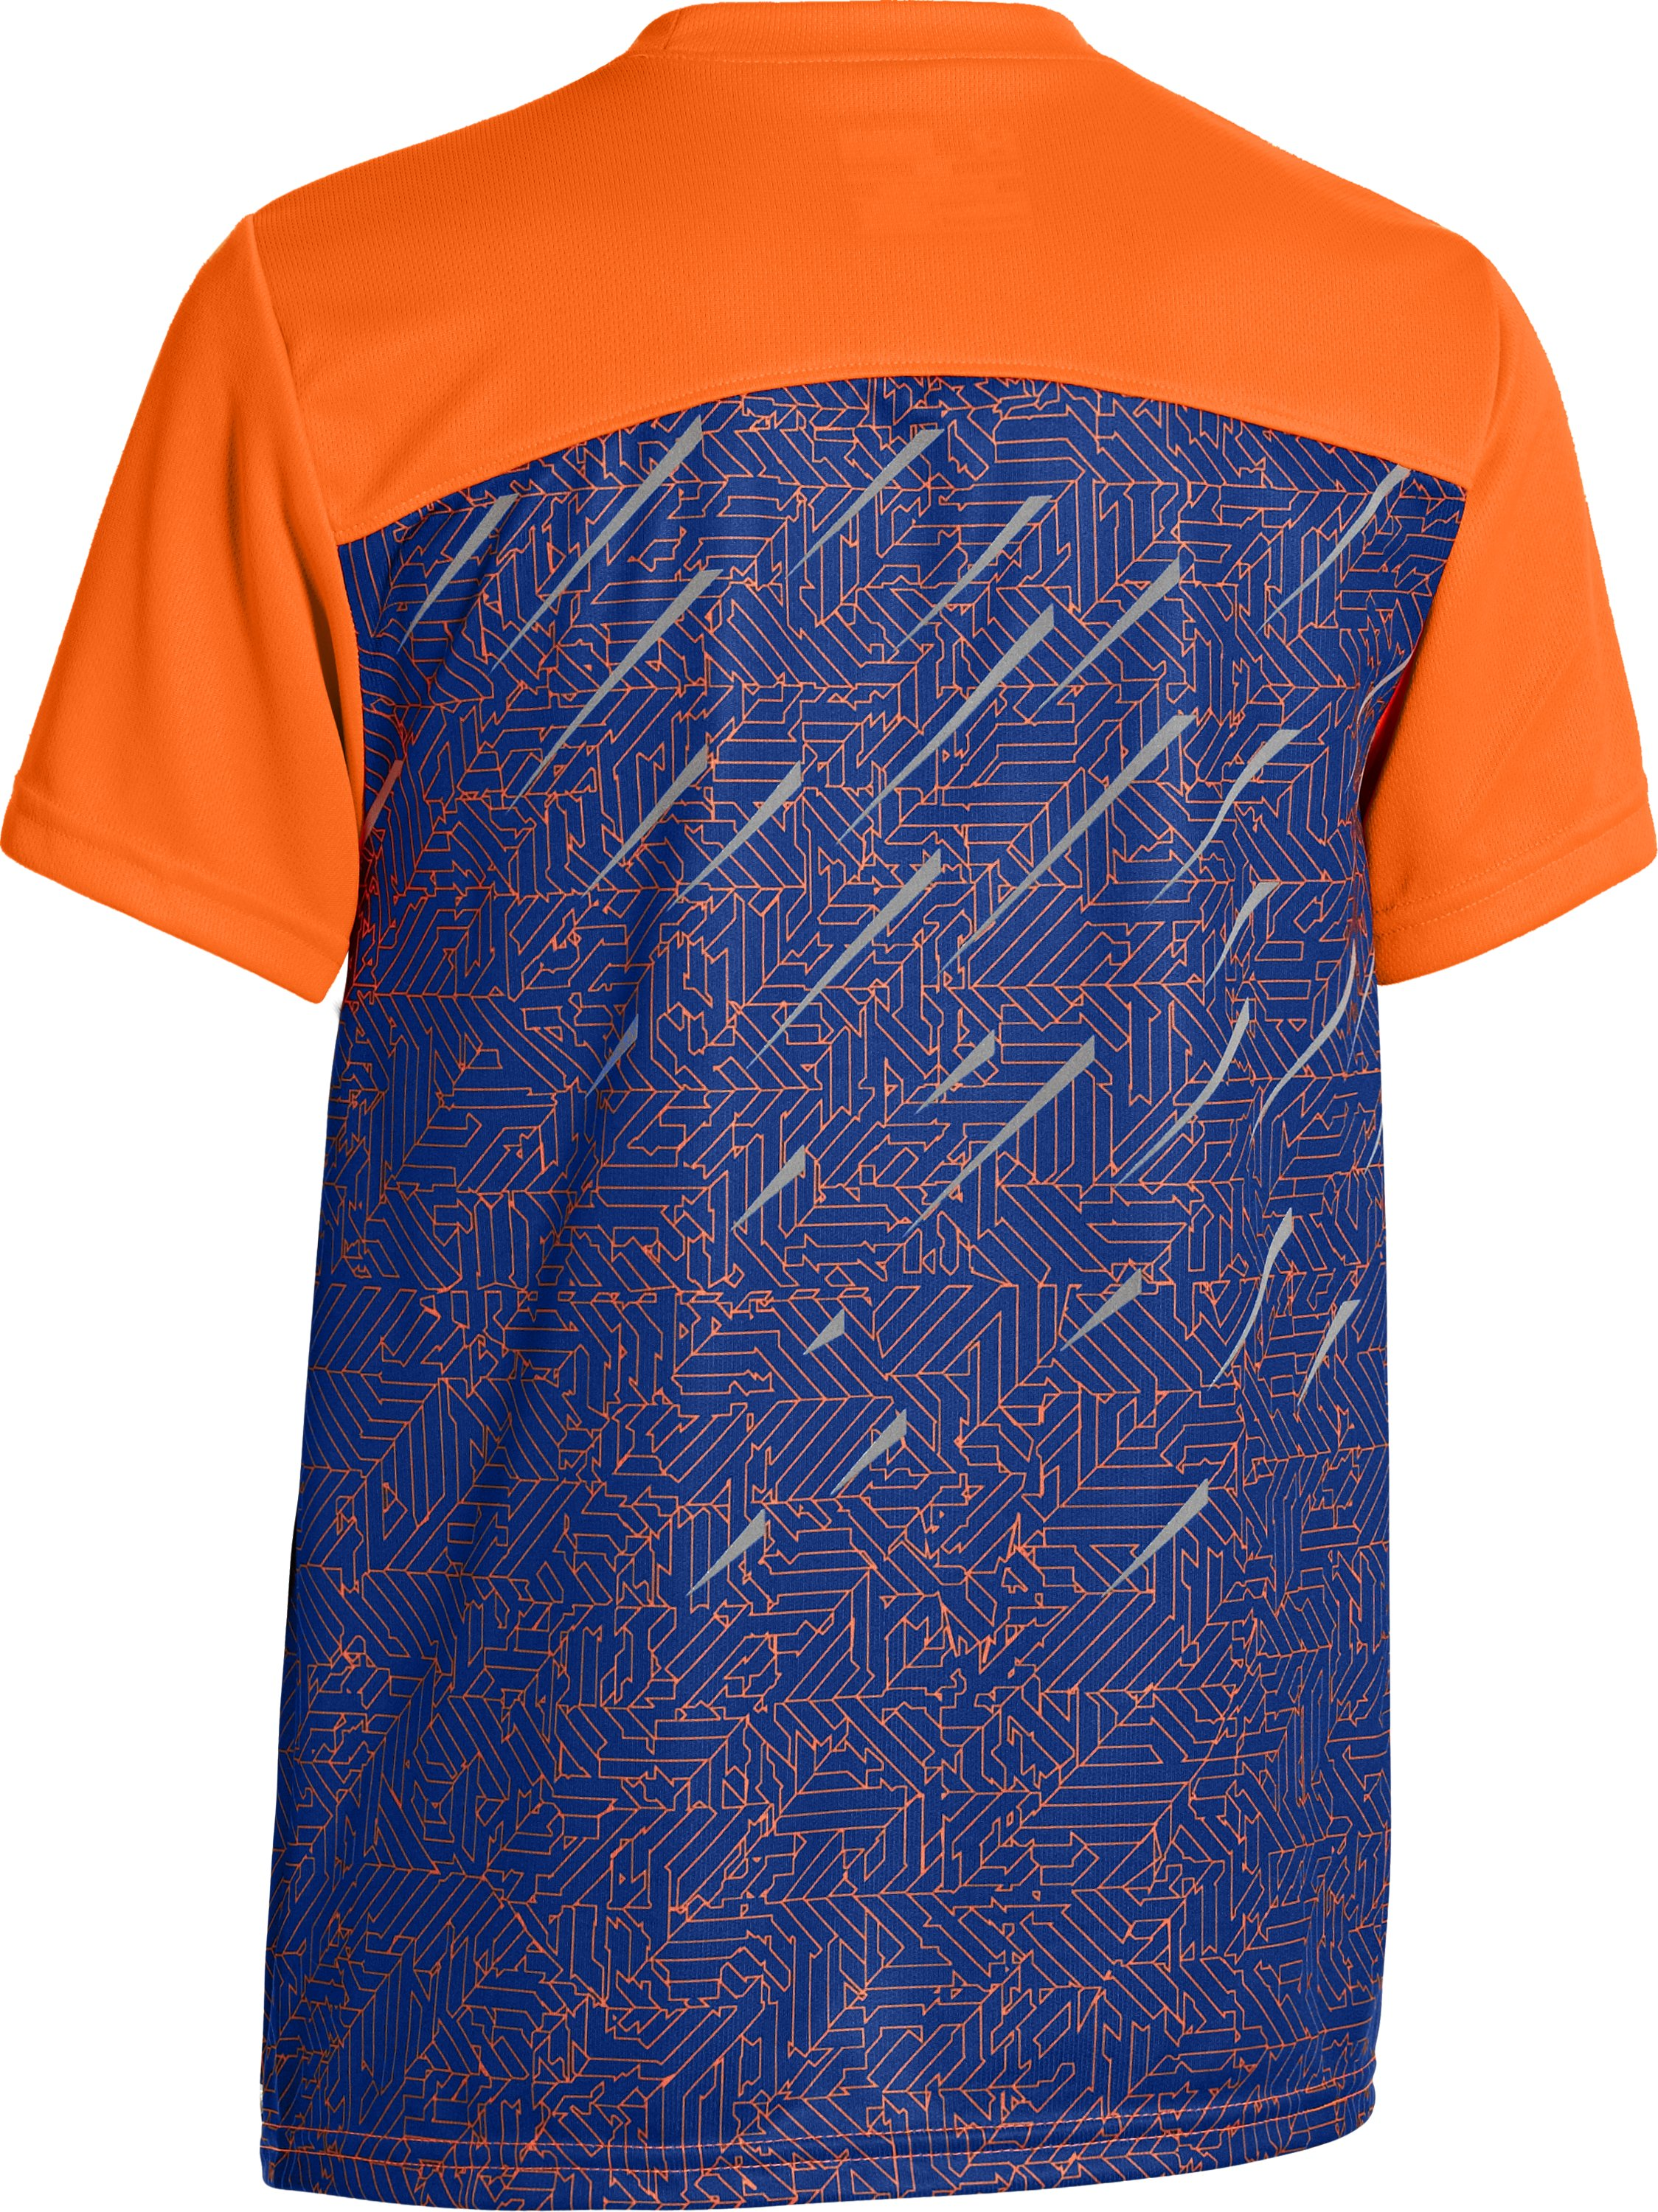 Boys' UA Watch Out Short Sleeve, Blaze Orange